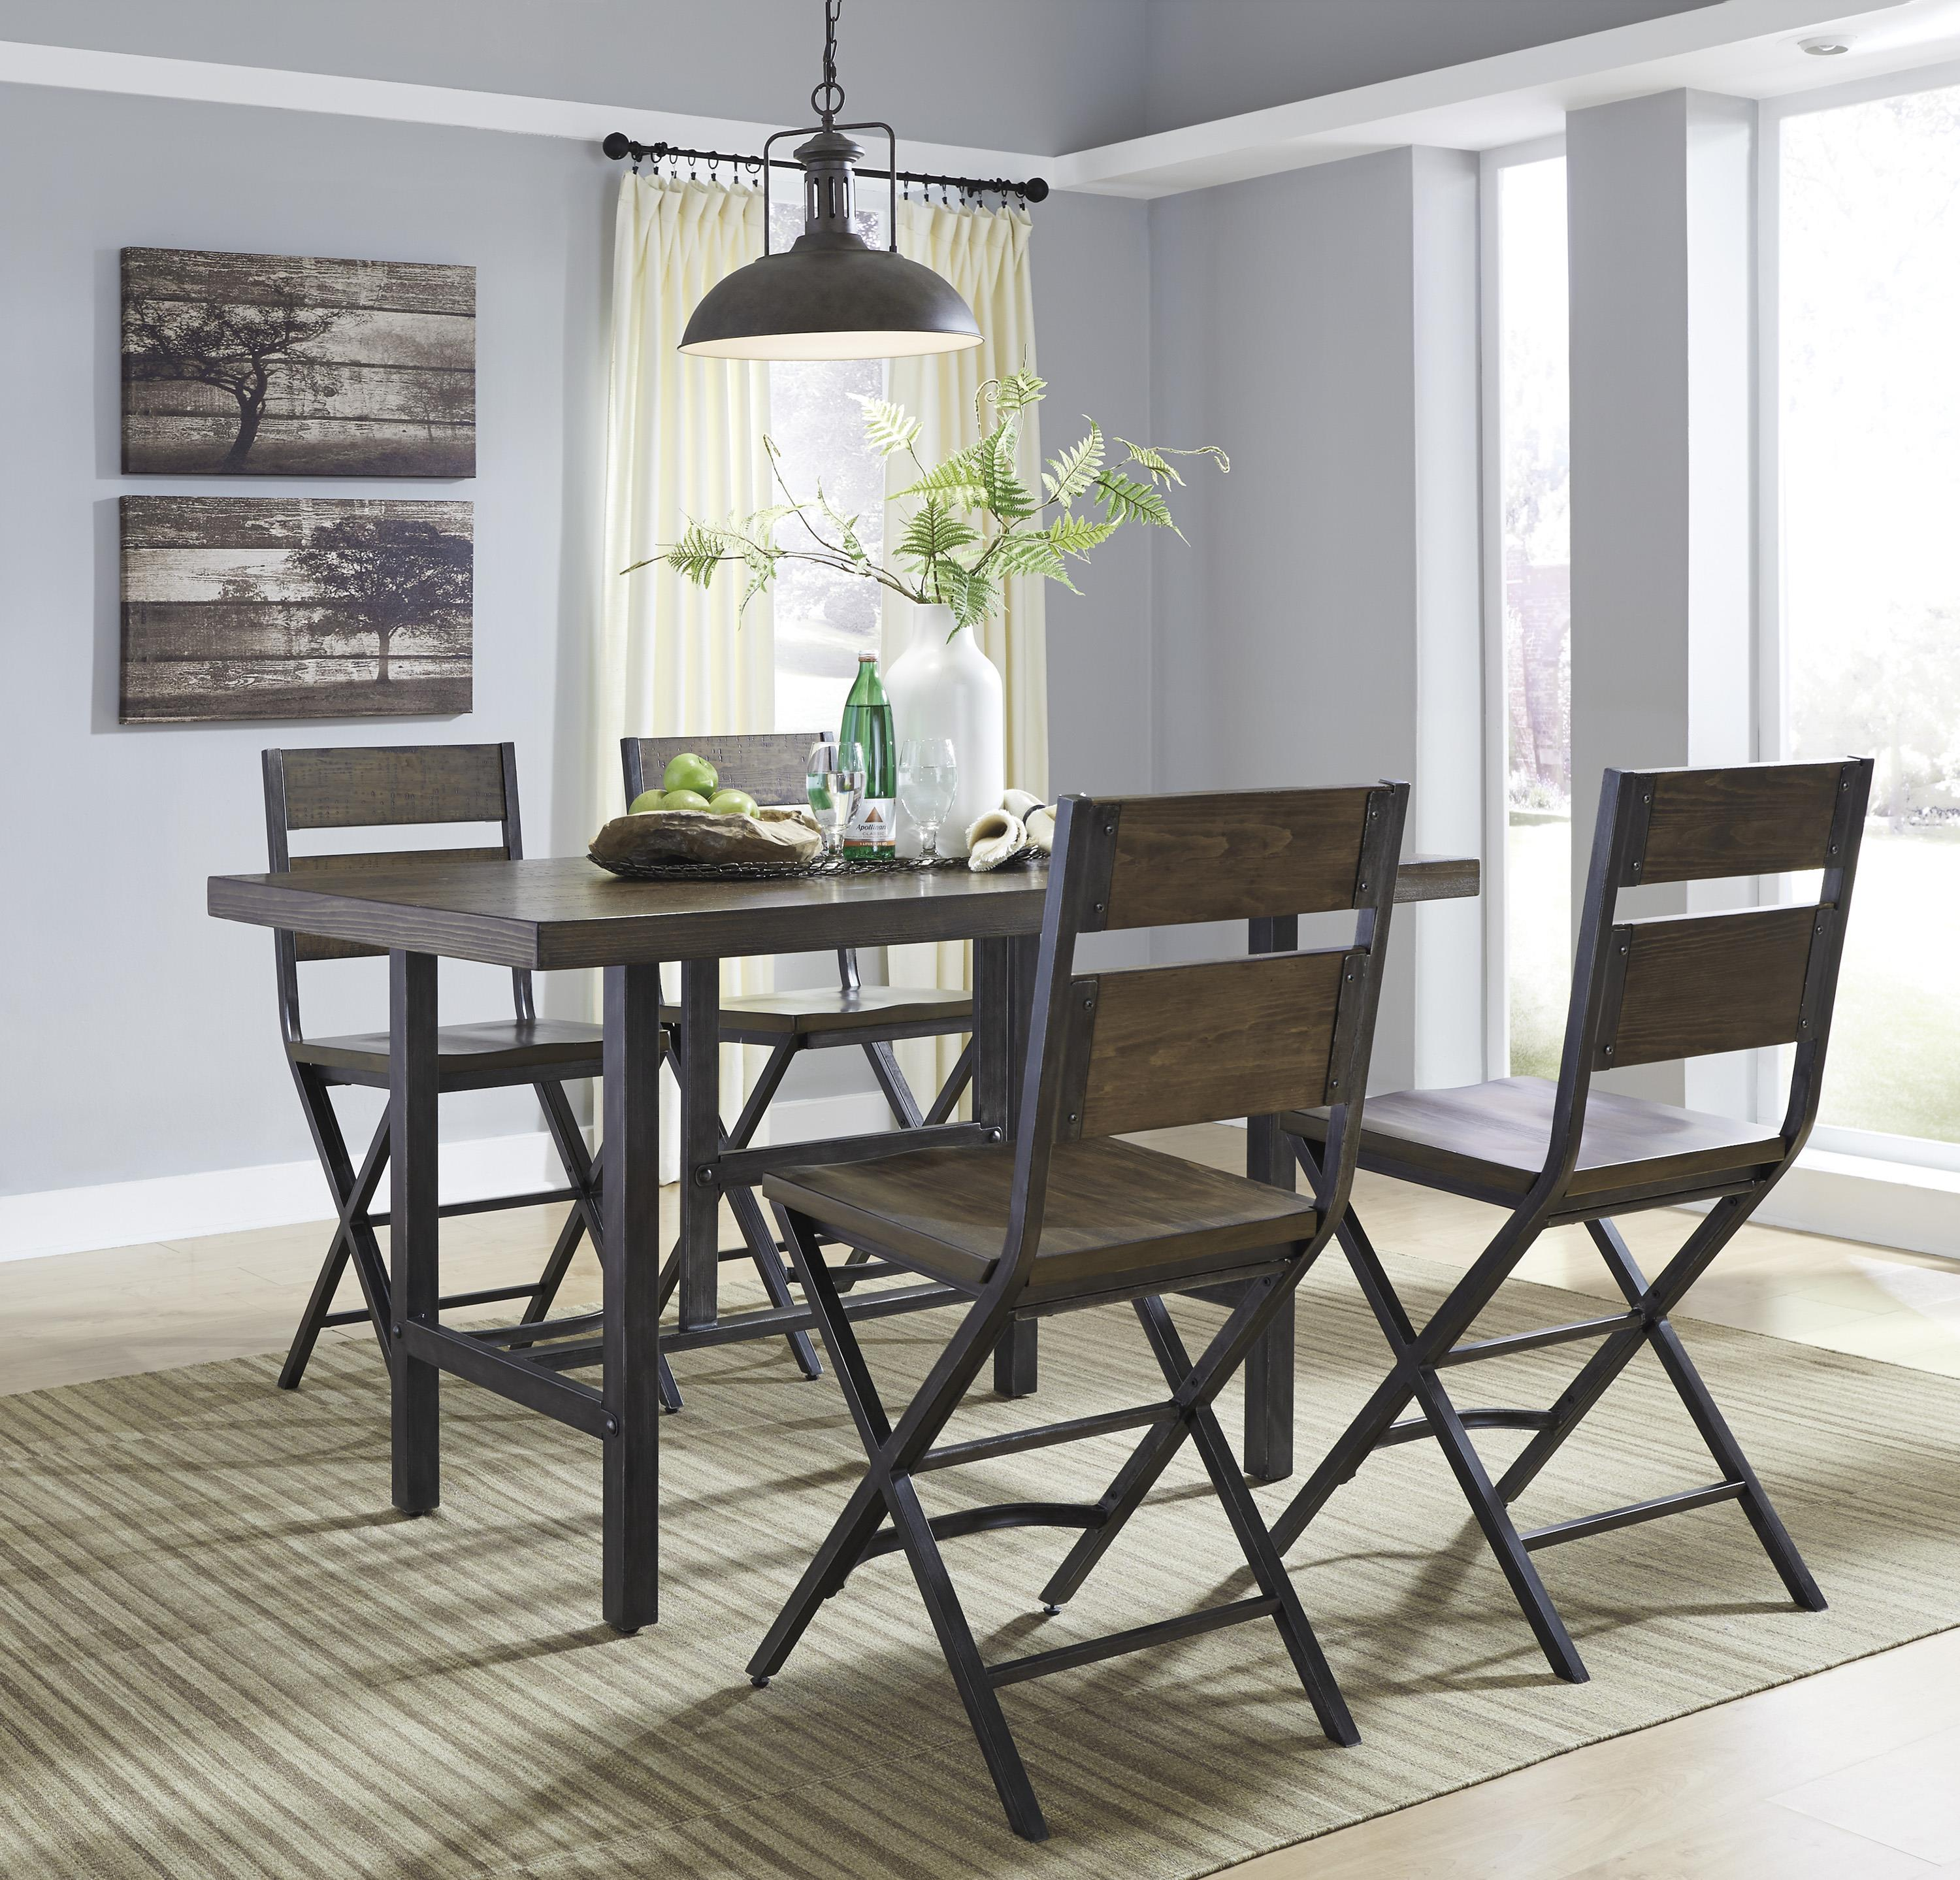 5 piece rectangular dining room counter table w pine veneers and bar stool w shaped foot rest. Black Bedroom Furniture Sets. Home Design Ideas